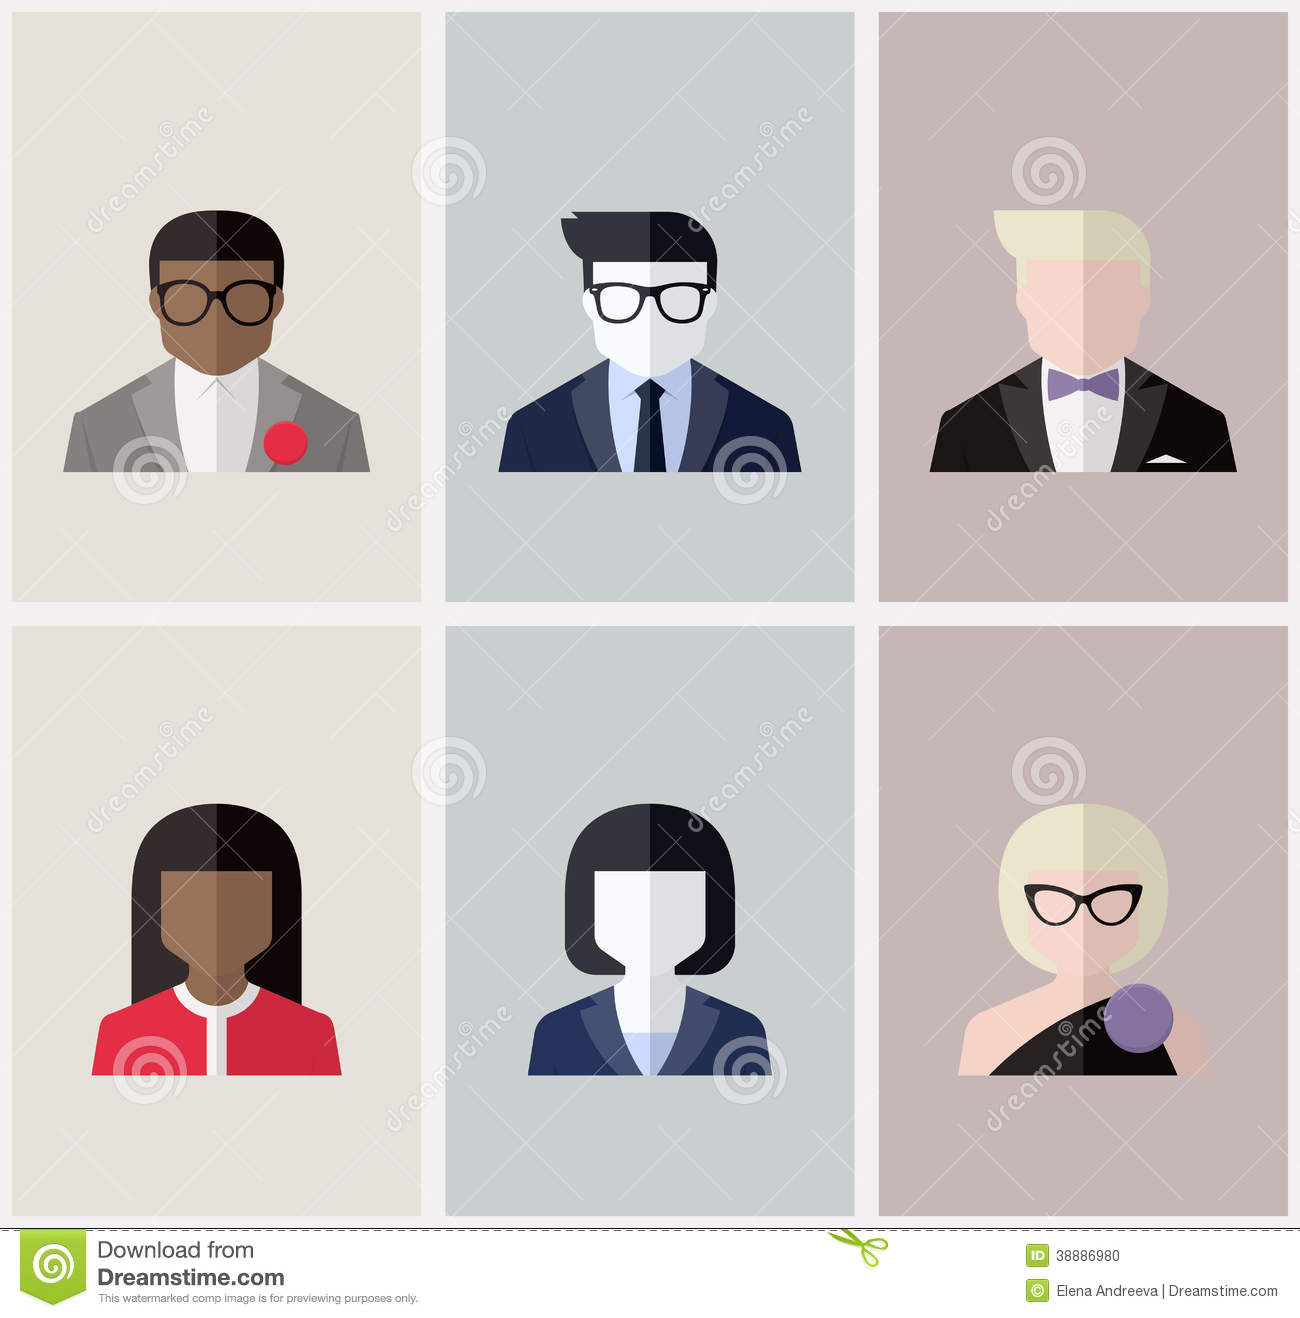 Book Icon Vector Male Student Or Teacher Person Profile: Modern Flat Vector Avatars Or User Icons Stock Vector